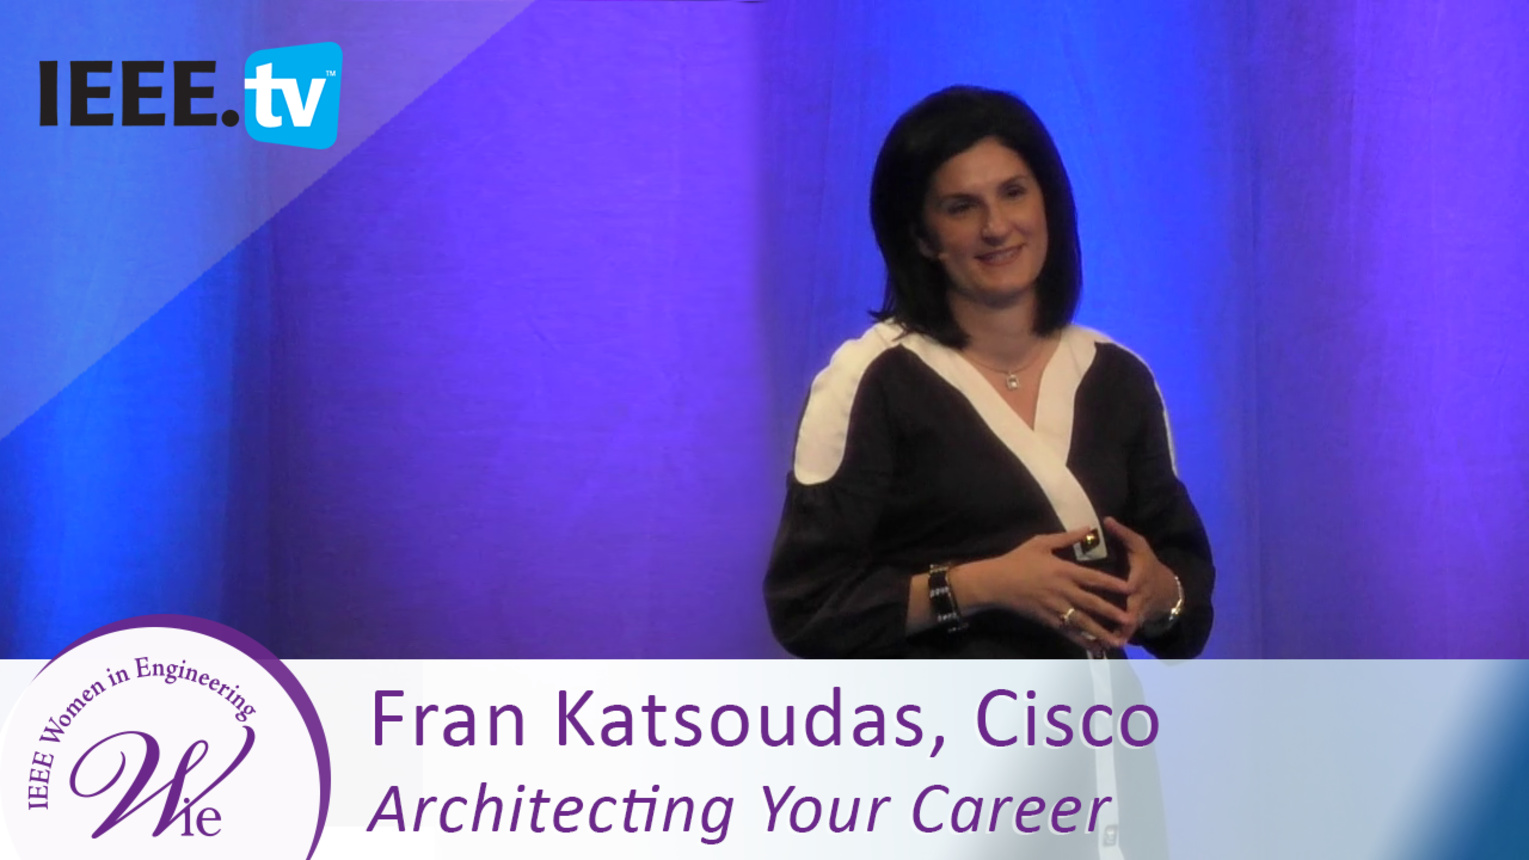 Cisco's Fran Katsoudas speaks about Architecting Your Career - 2016 Women in Engineering Conference